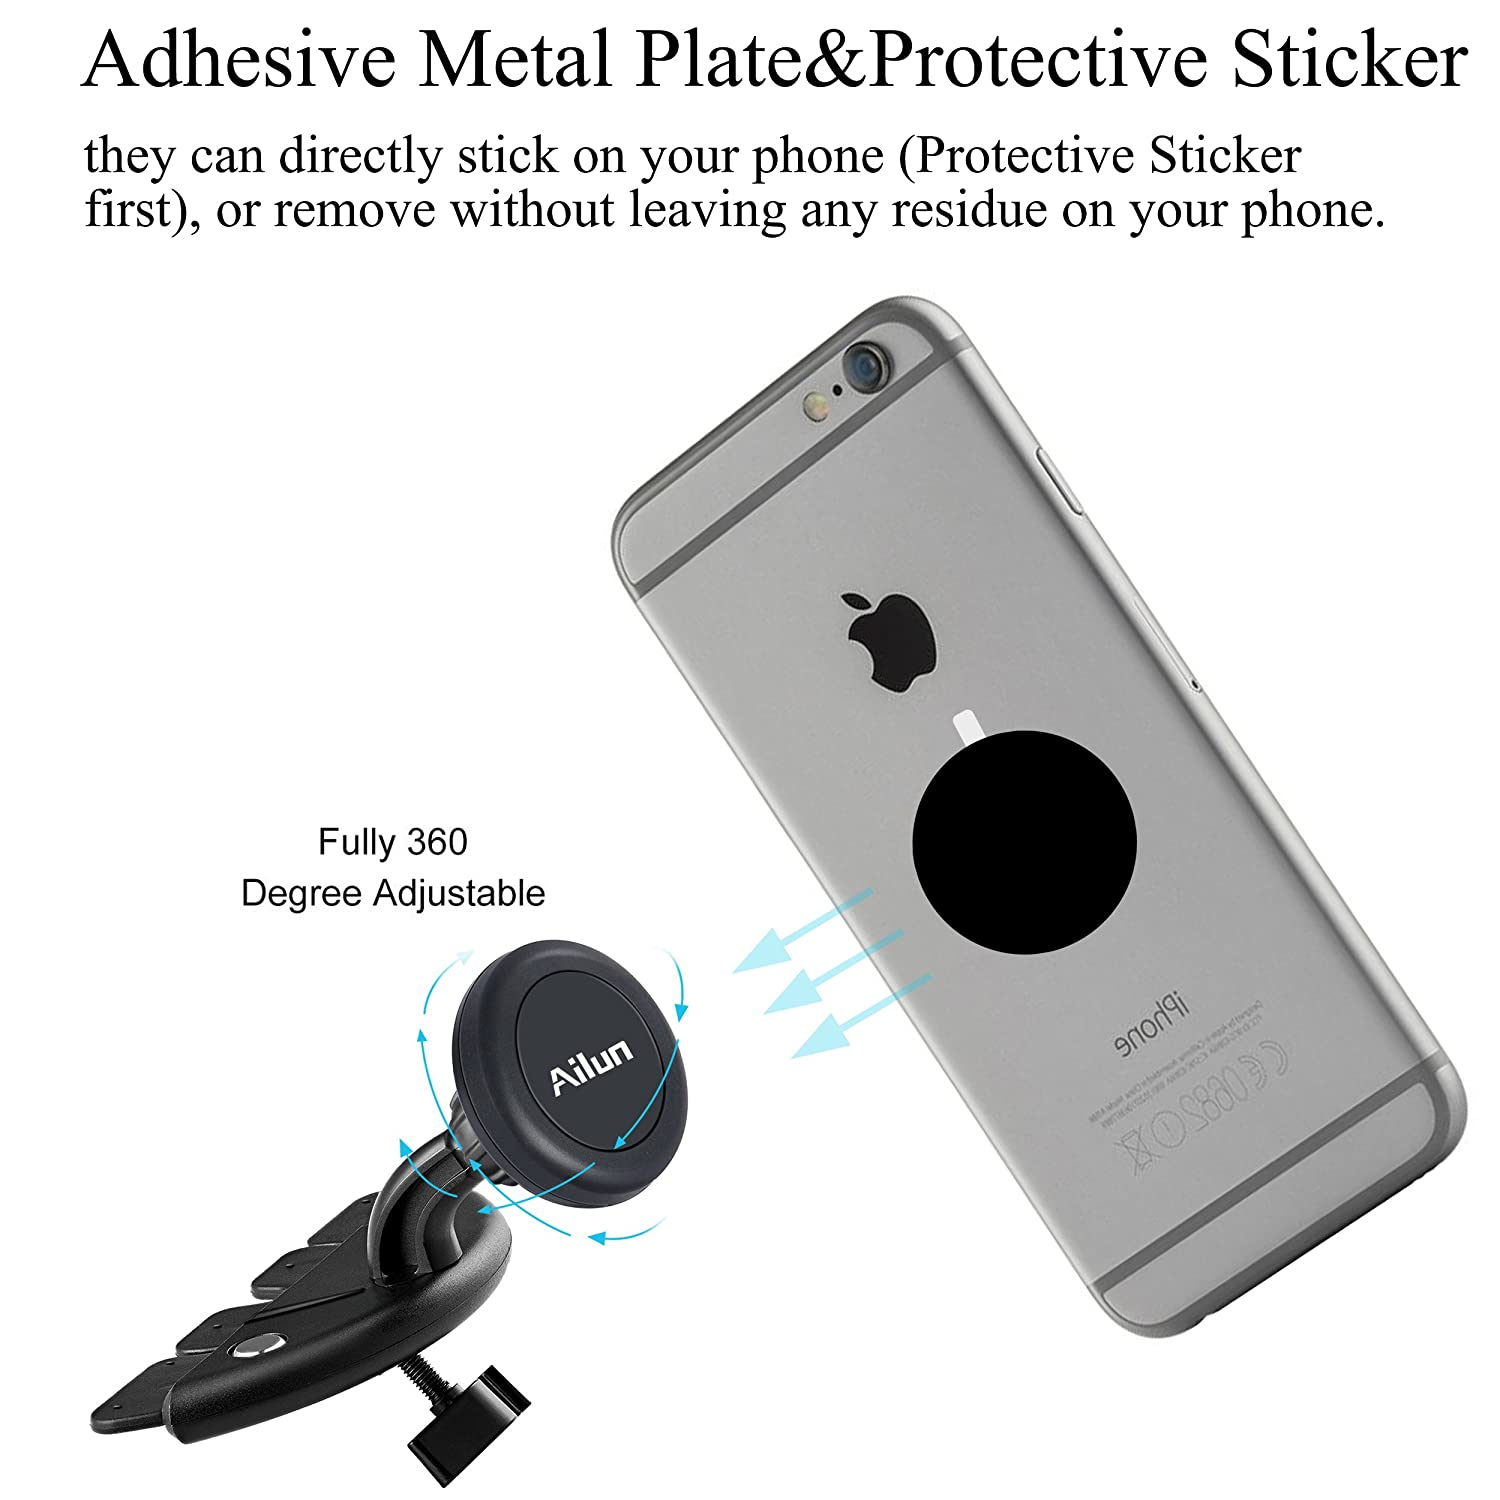 Car Phone Mount,CD Slot Magnetic Car Mount Magnet Key Holder,by Ailun,Universal for iPhoneX//Xs//XR//Xs Max//8//7//6//6s Plus,Galaxy S7//S8//S9 Plus,Google,LG,HTC and More Devices Siania 4336707144